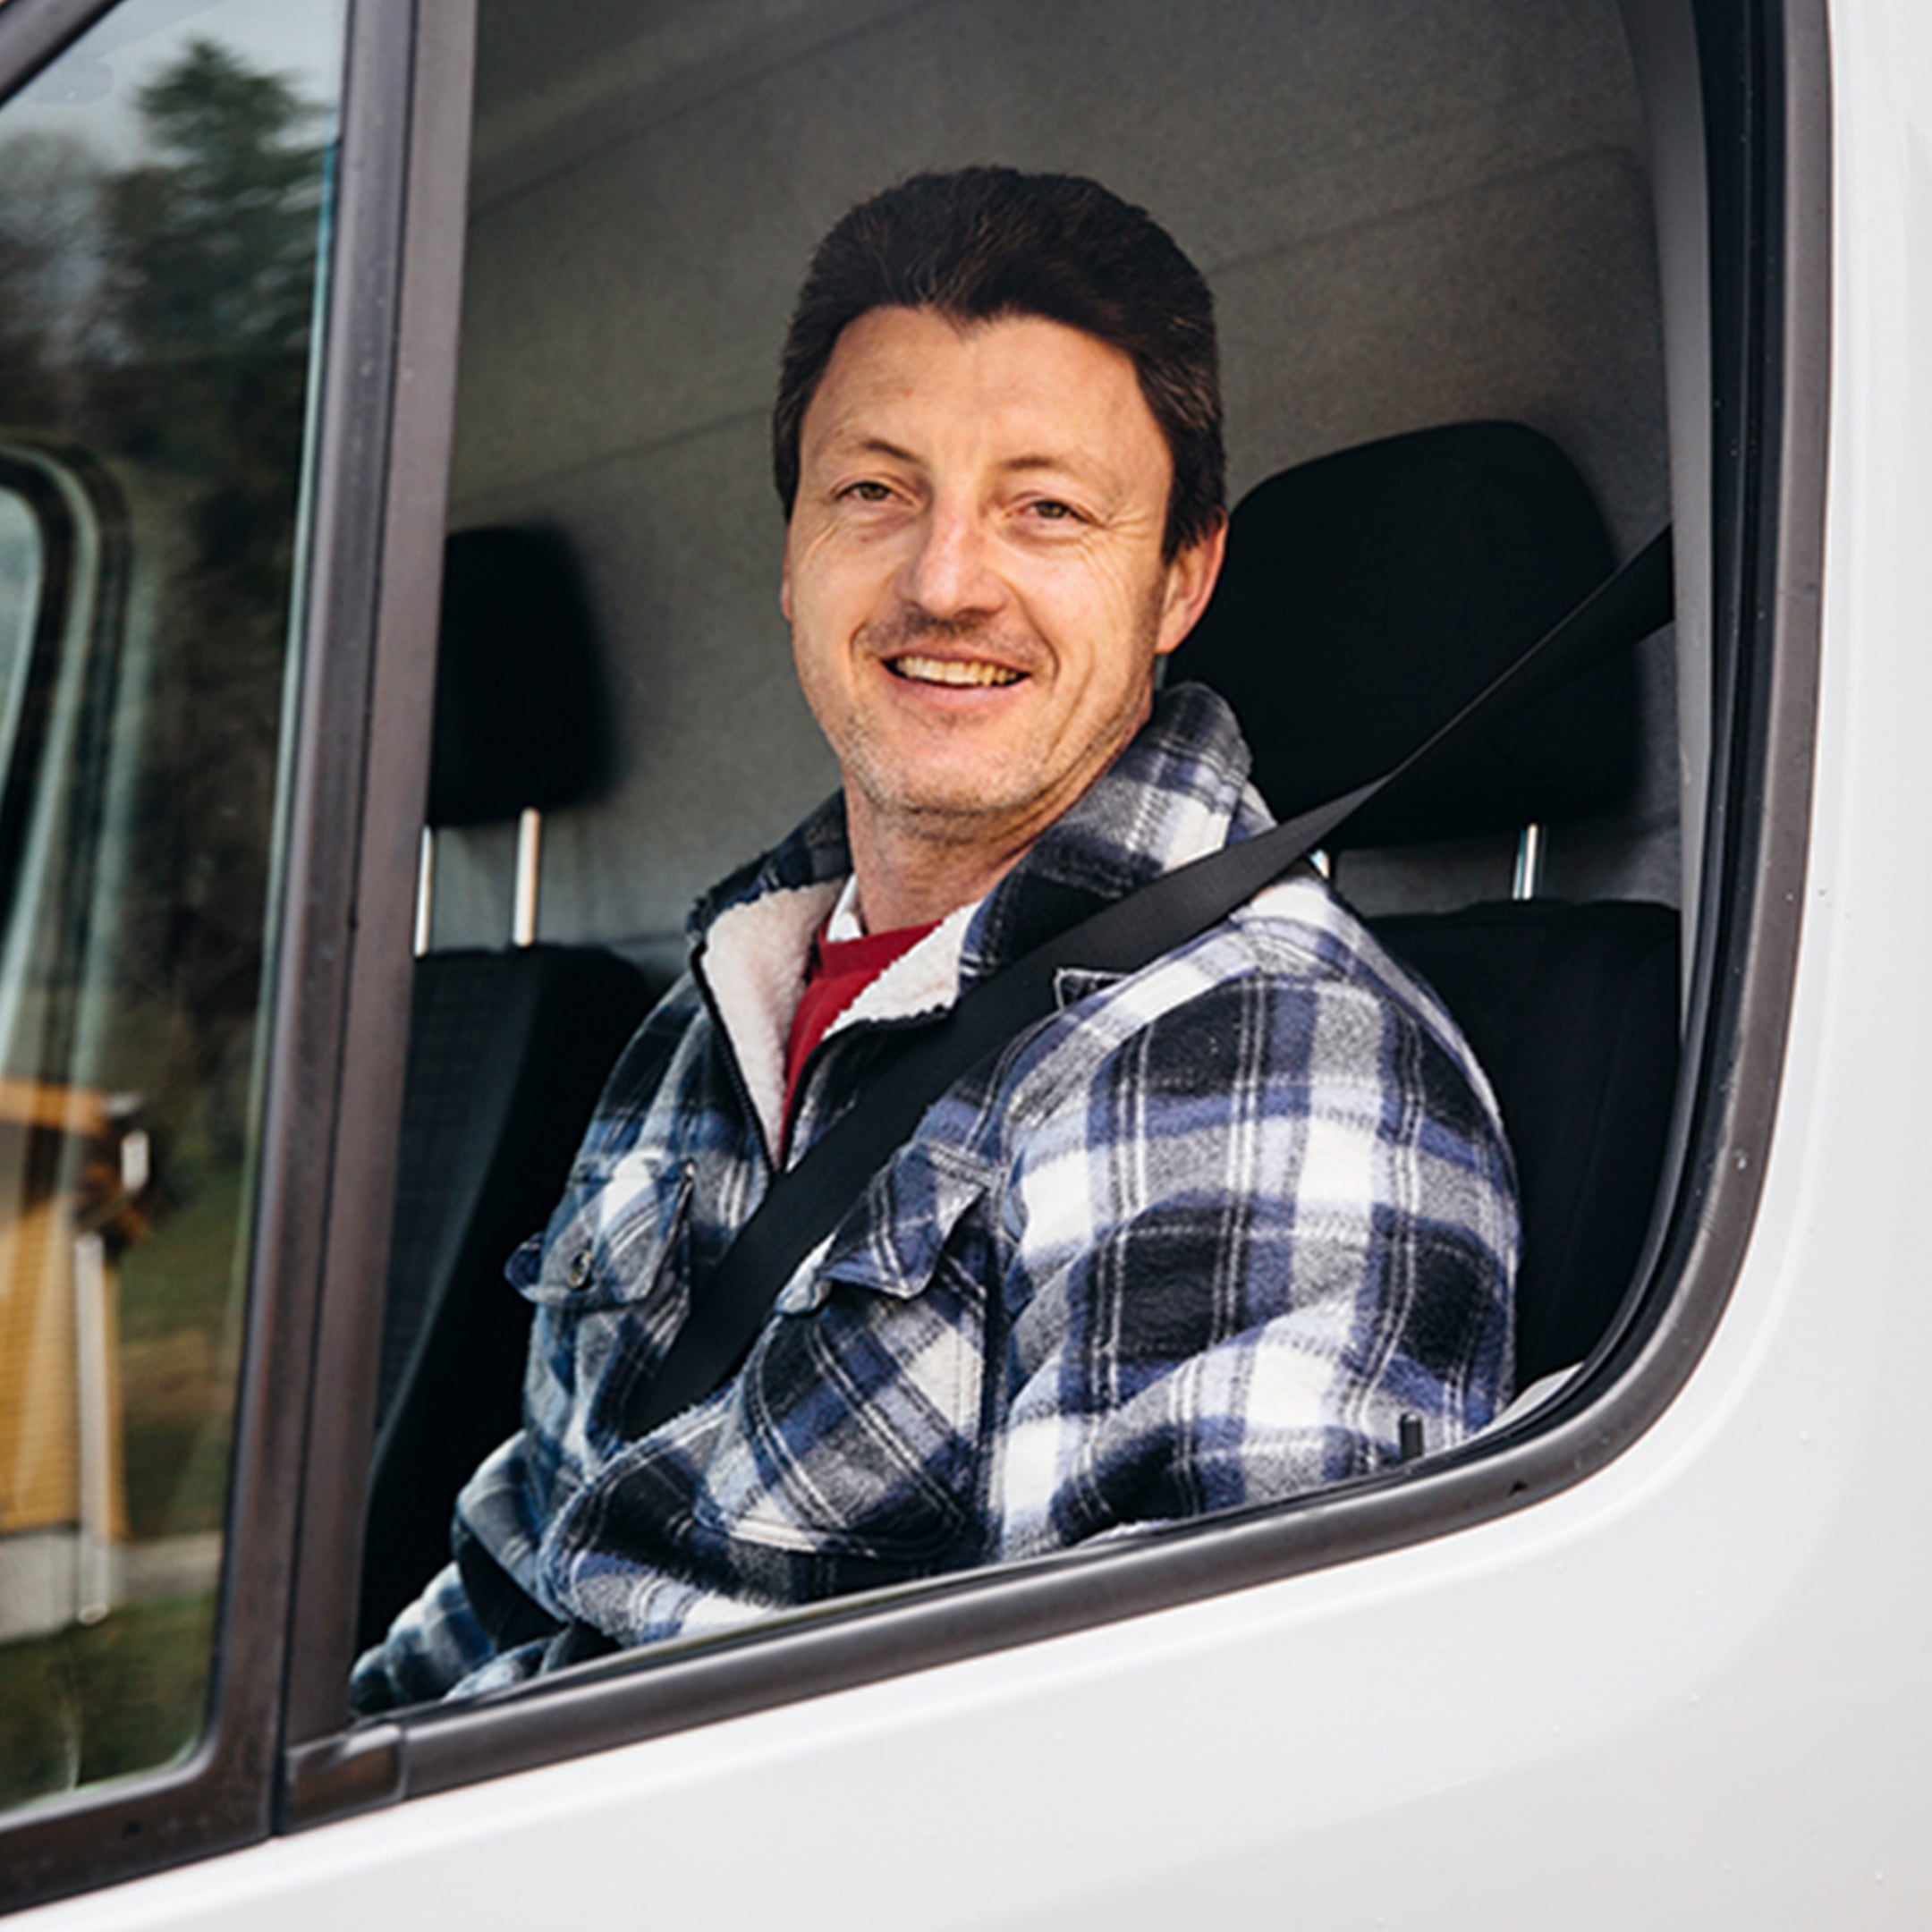 A man sitting behind the wheel of a Sprinter looking through the side window into the camera